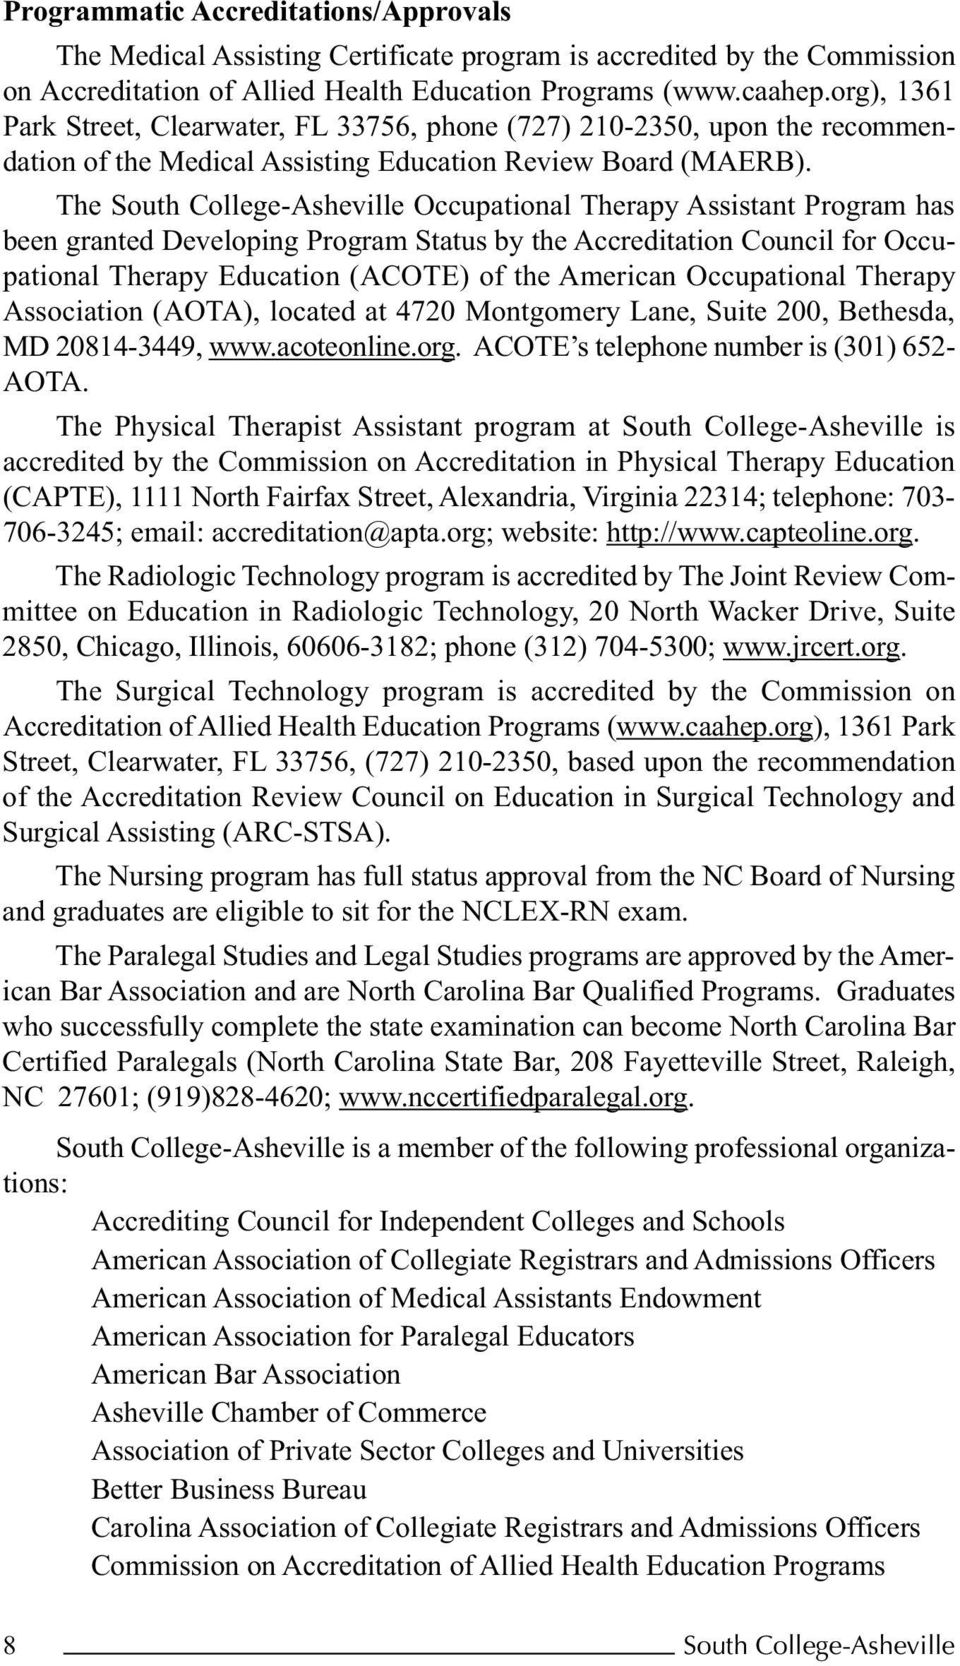 The South College-Asheville Occupational Therapy Assistant Program has been granted Developing Program Status by the Accreditation Council for Occupational Therapy Education (ACOTE) of the American